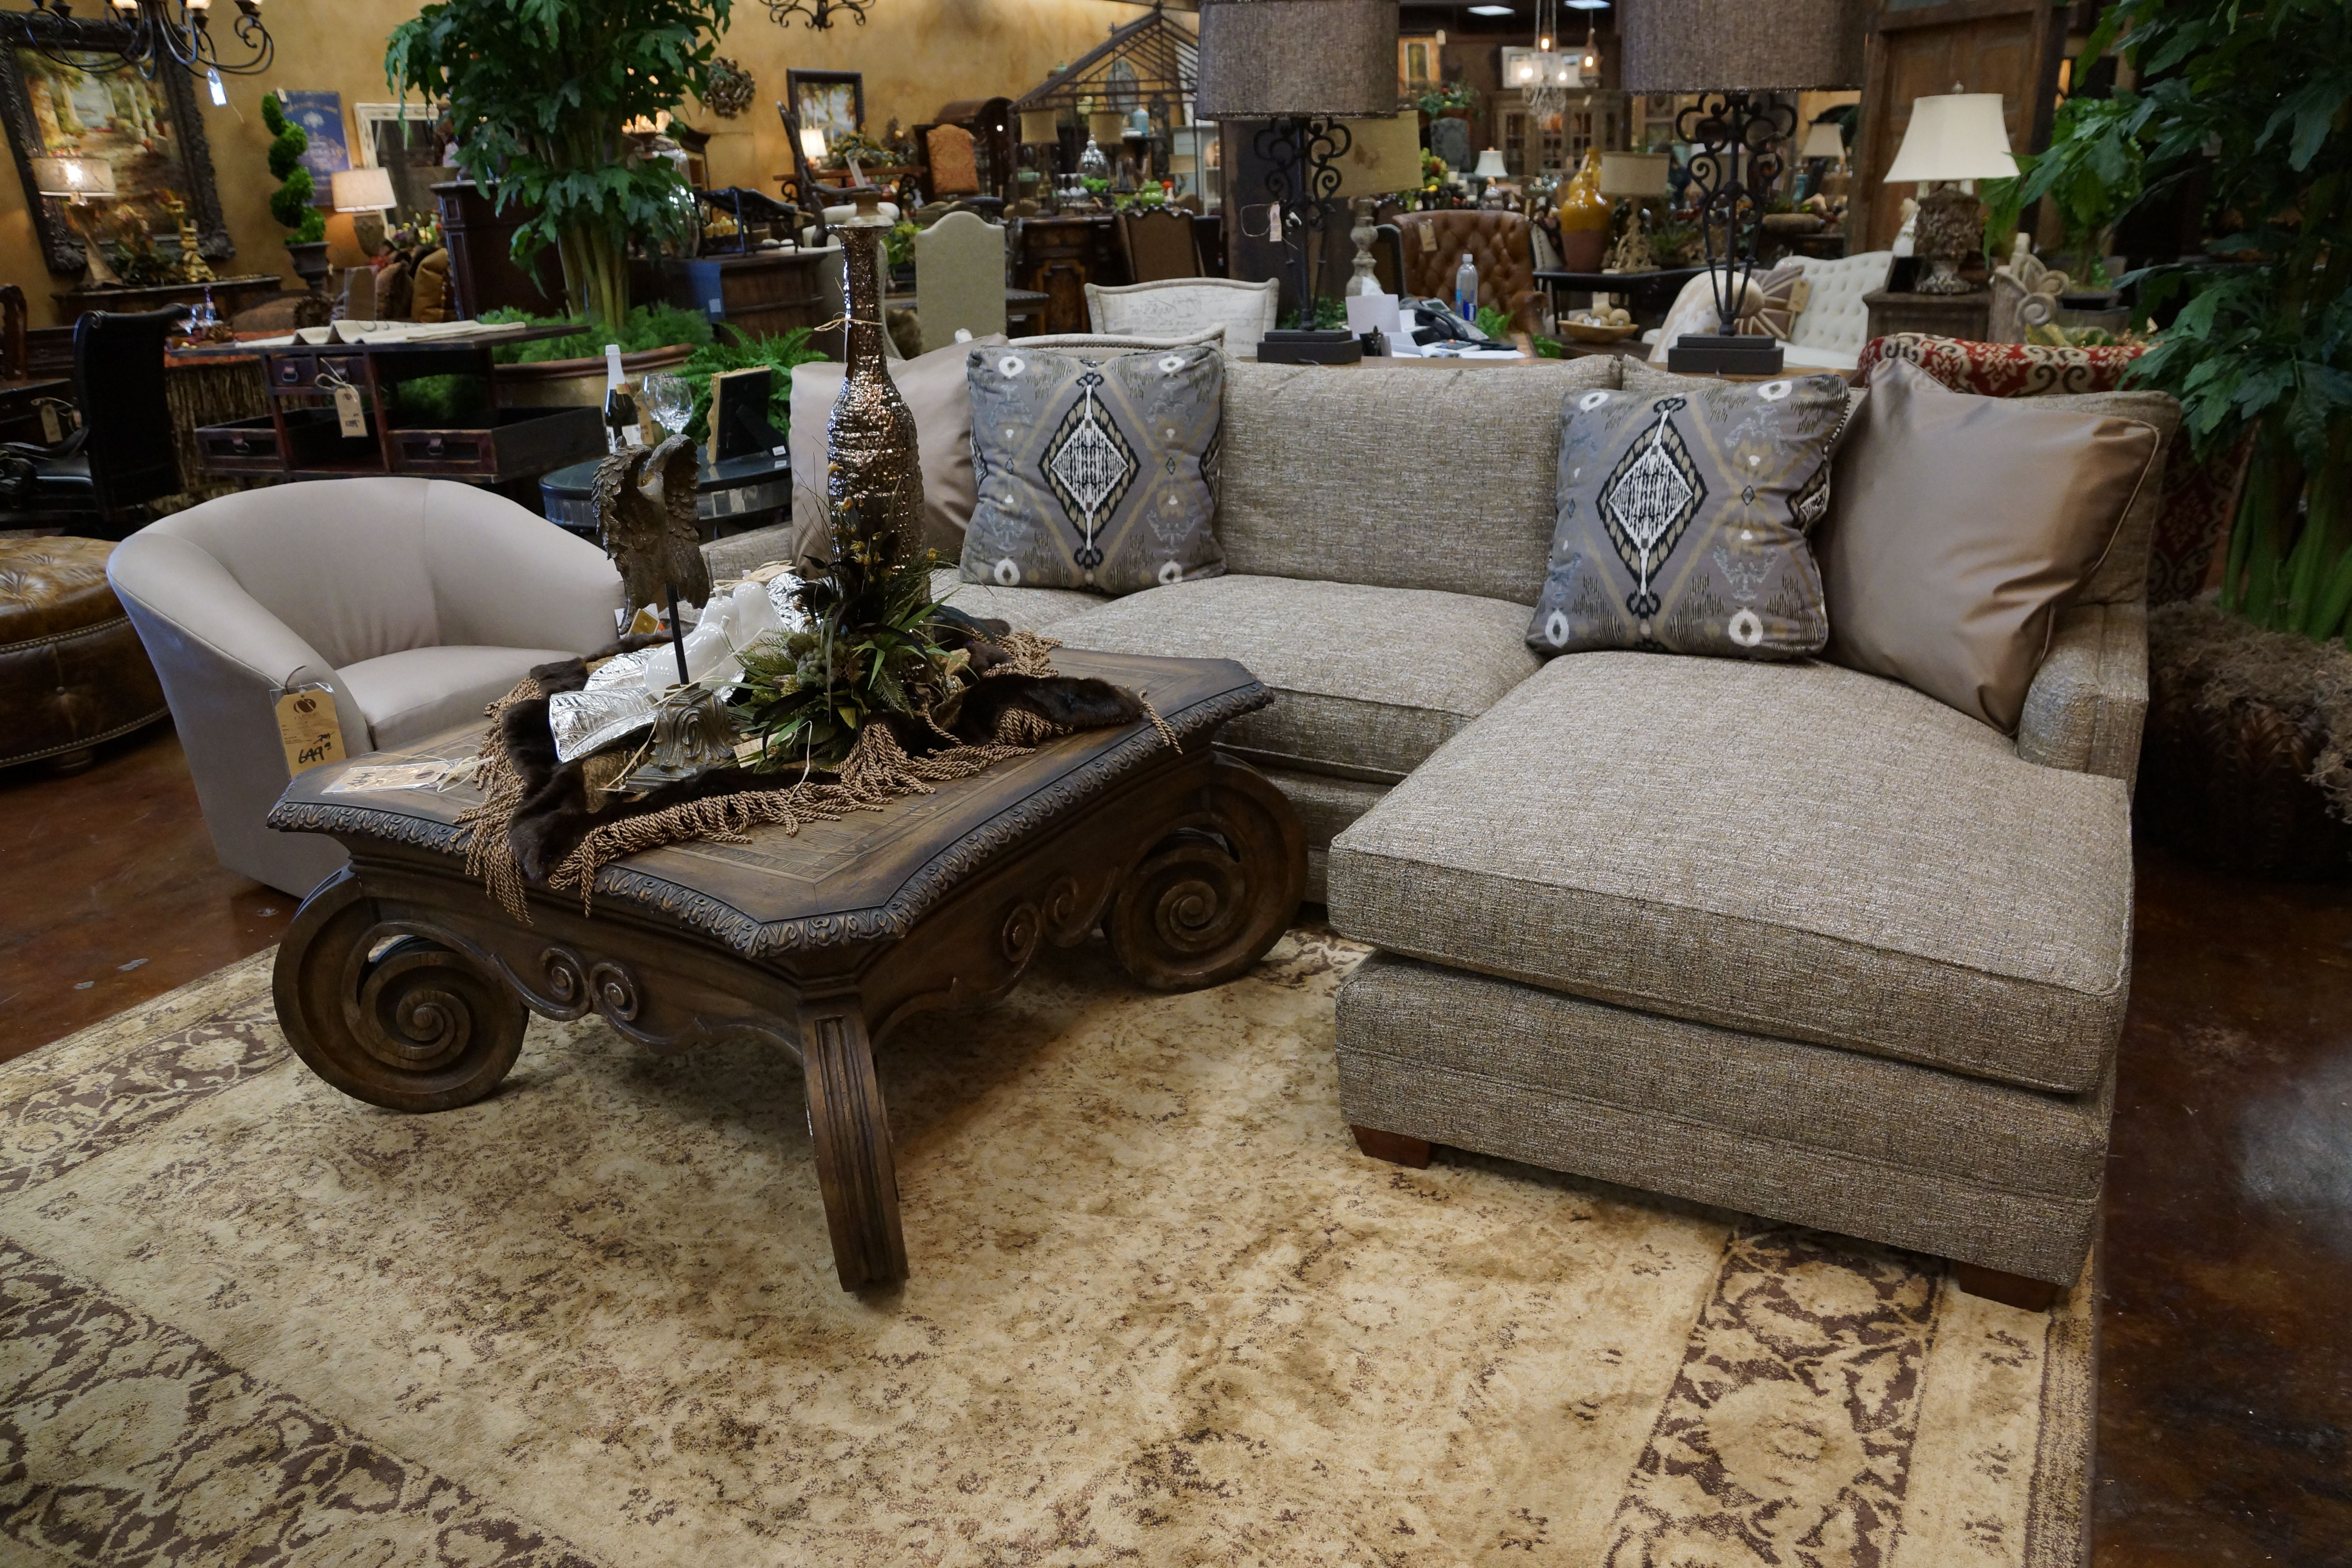 Available at Carter's Furniture, Midland, Texas 432-682-2843